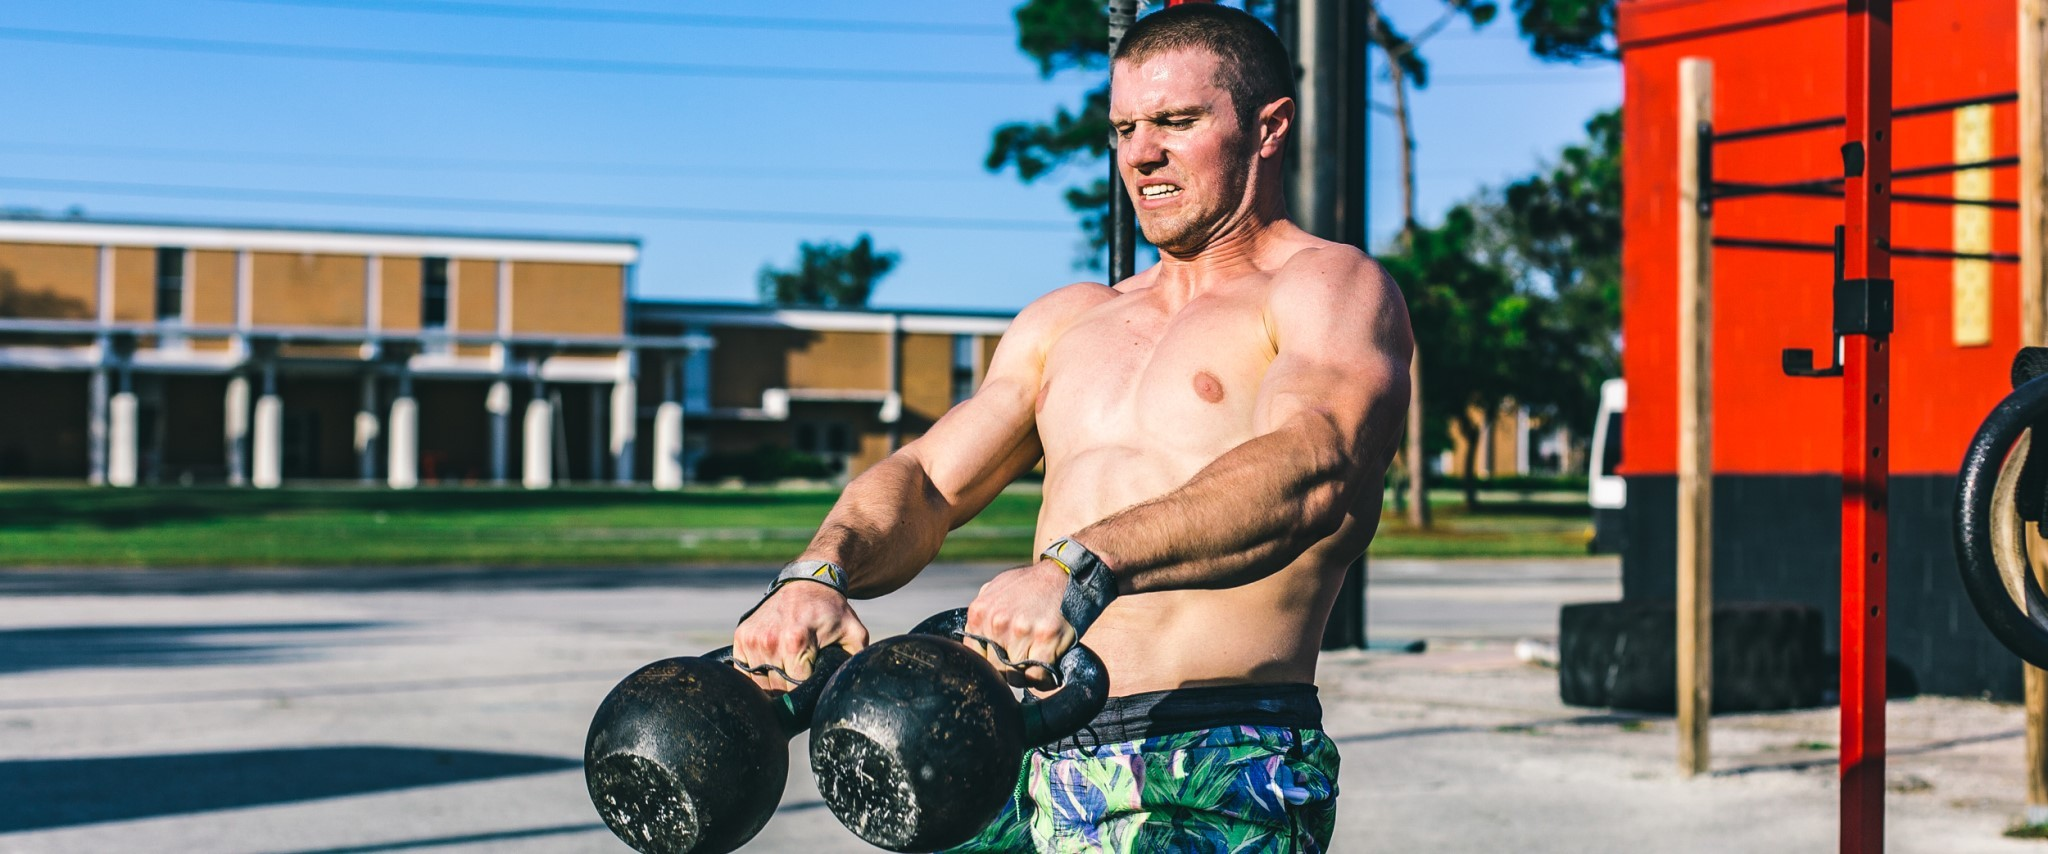 How To Build Explosive Strength With Kettlebells.